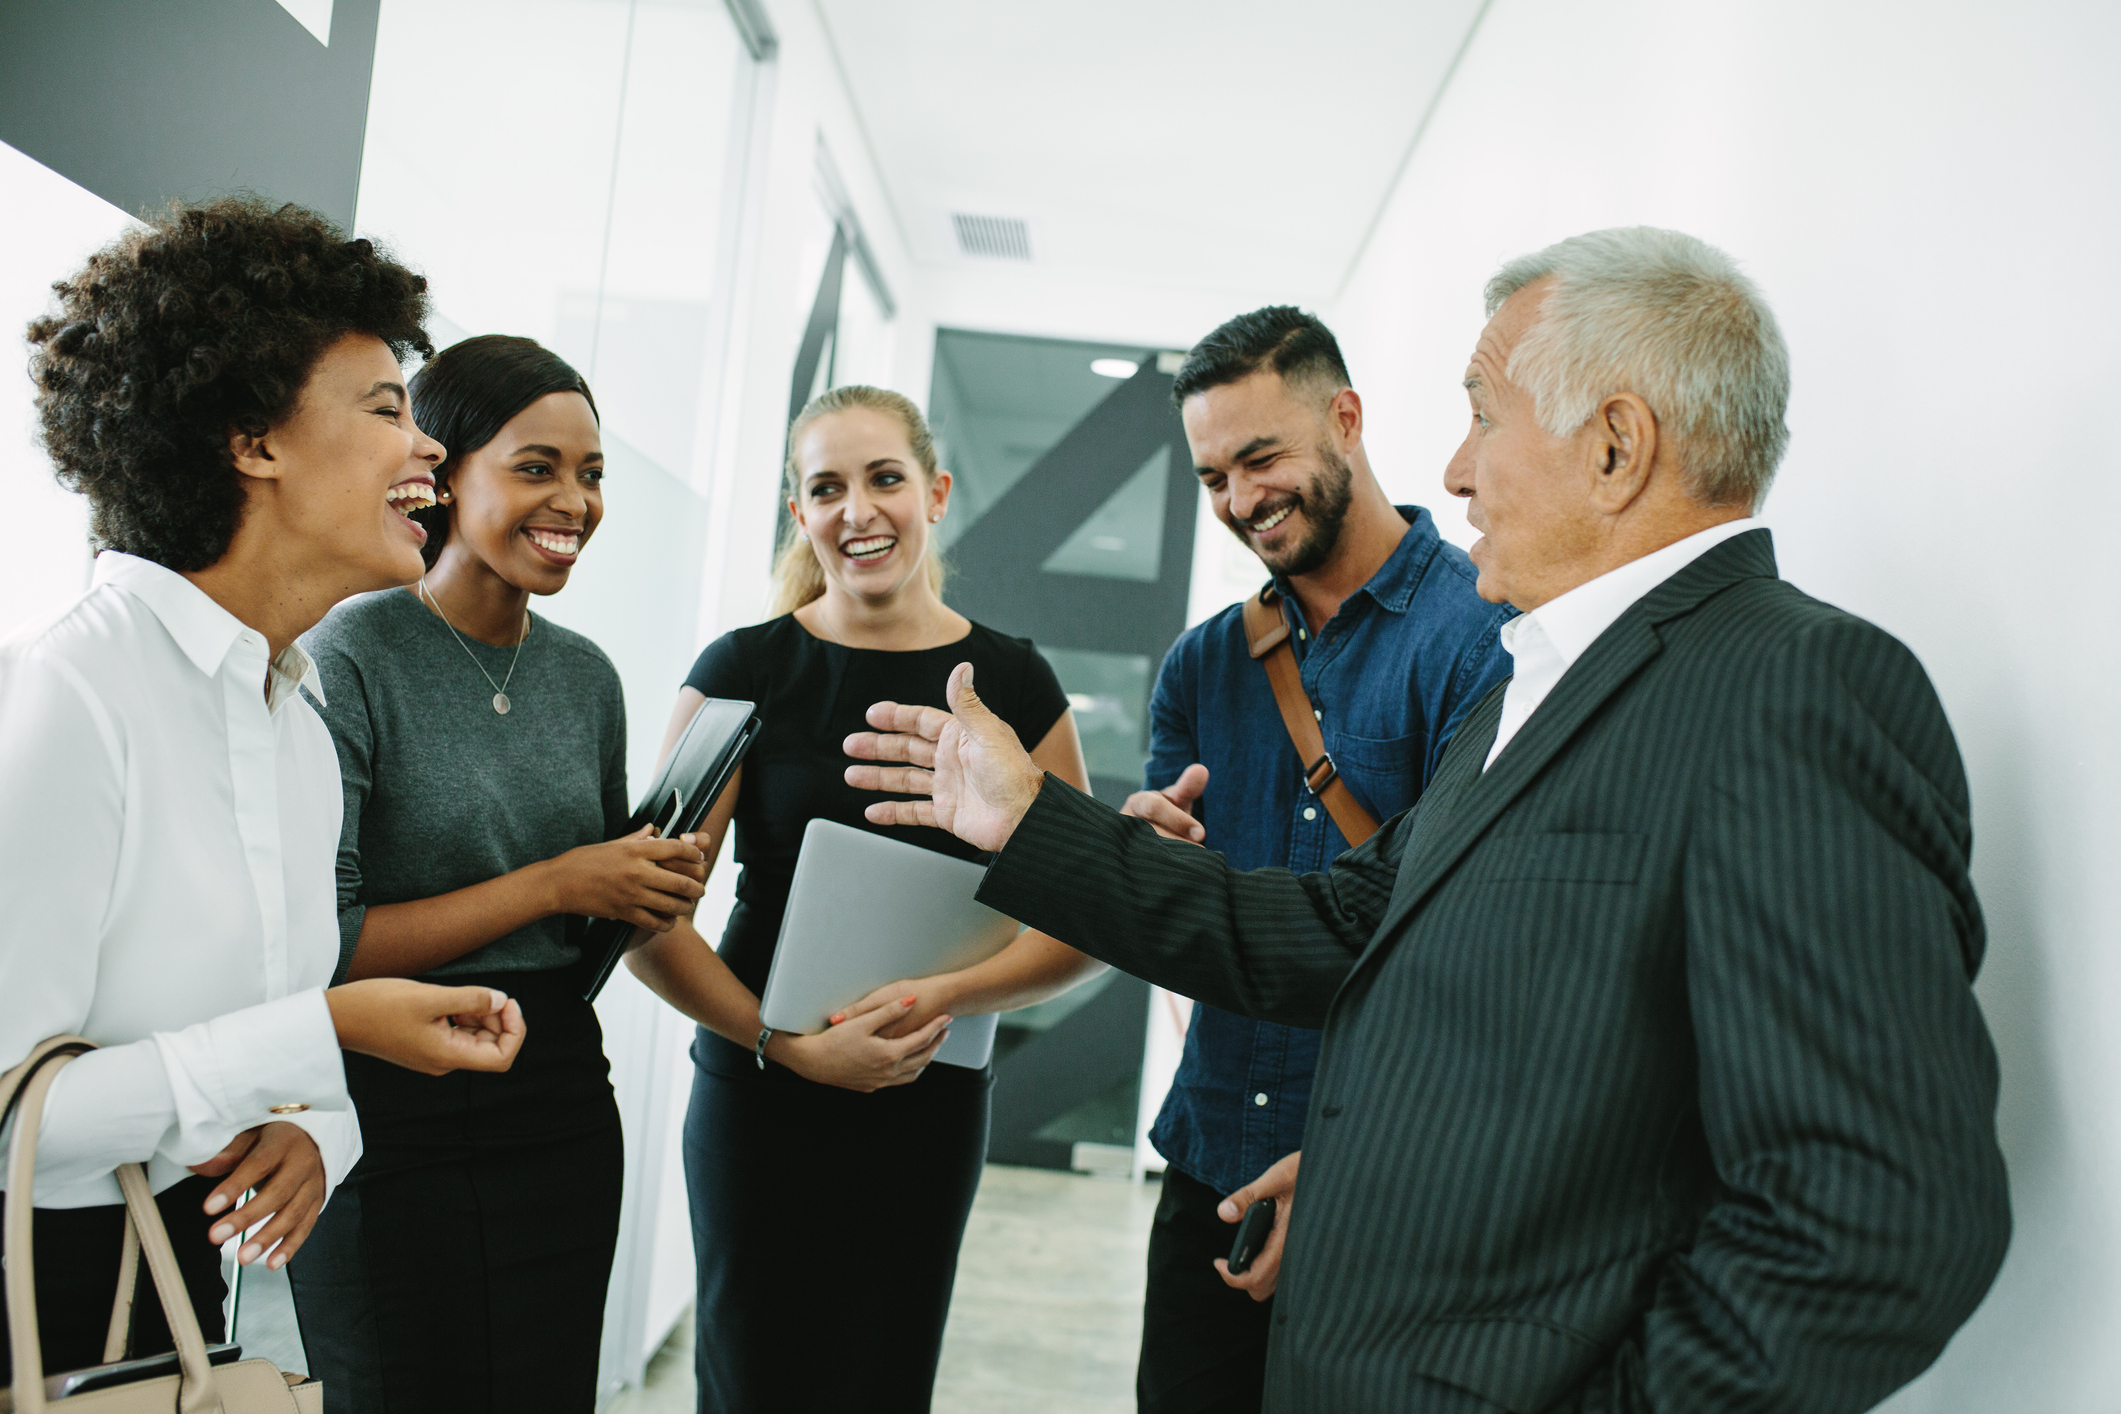 Stock photo of colleagues laughing in a hallway